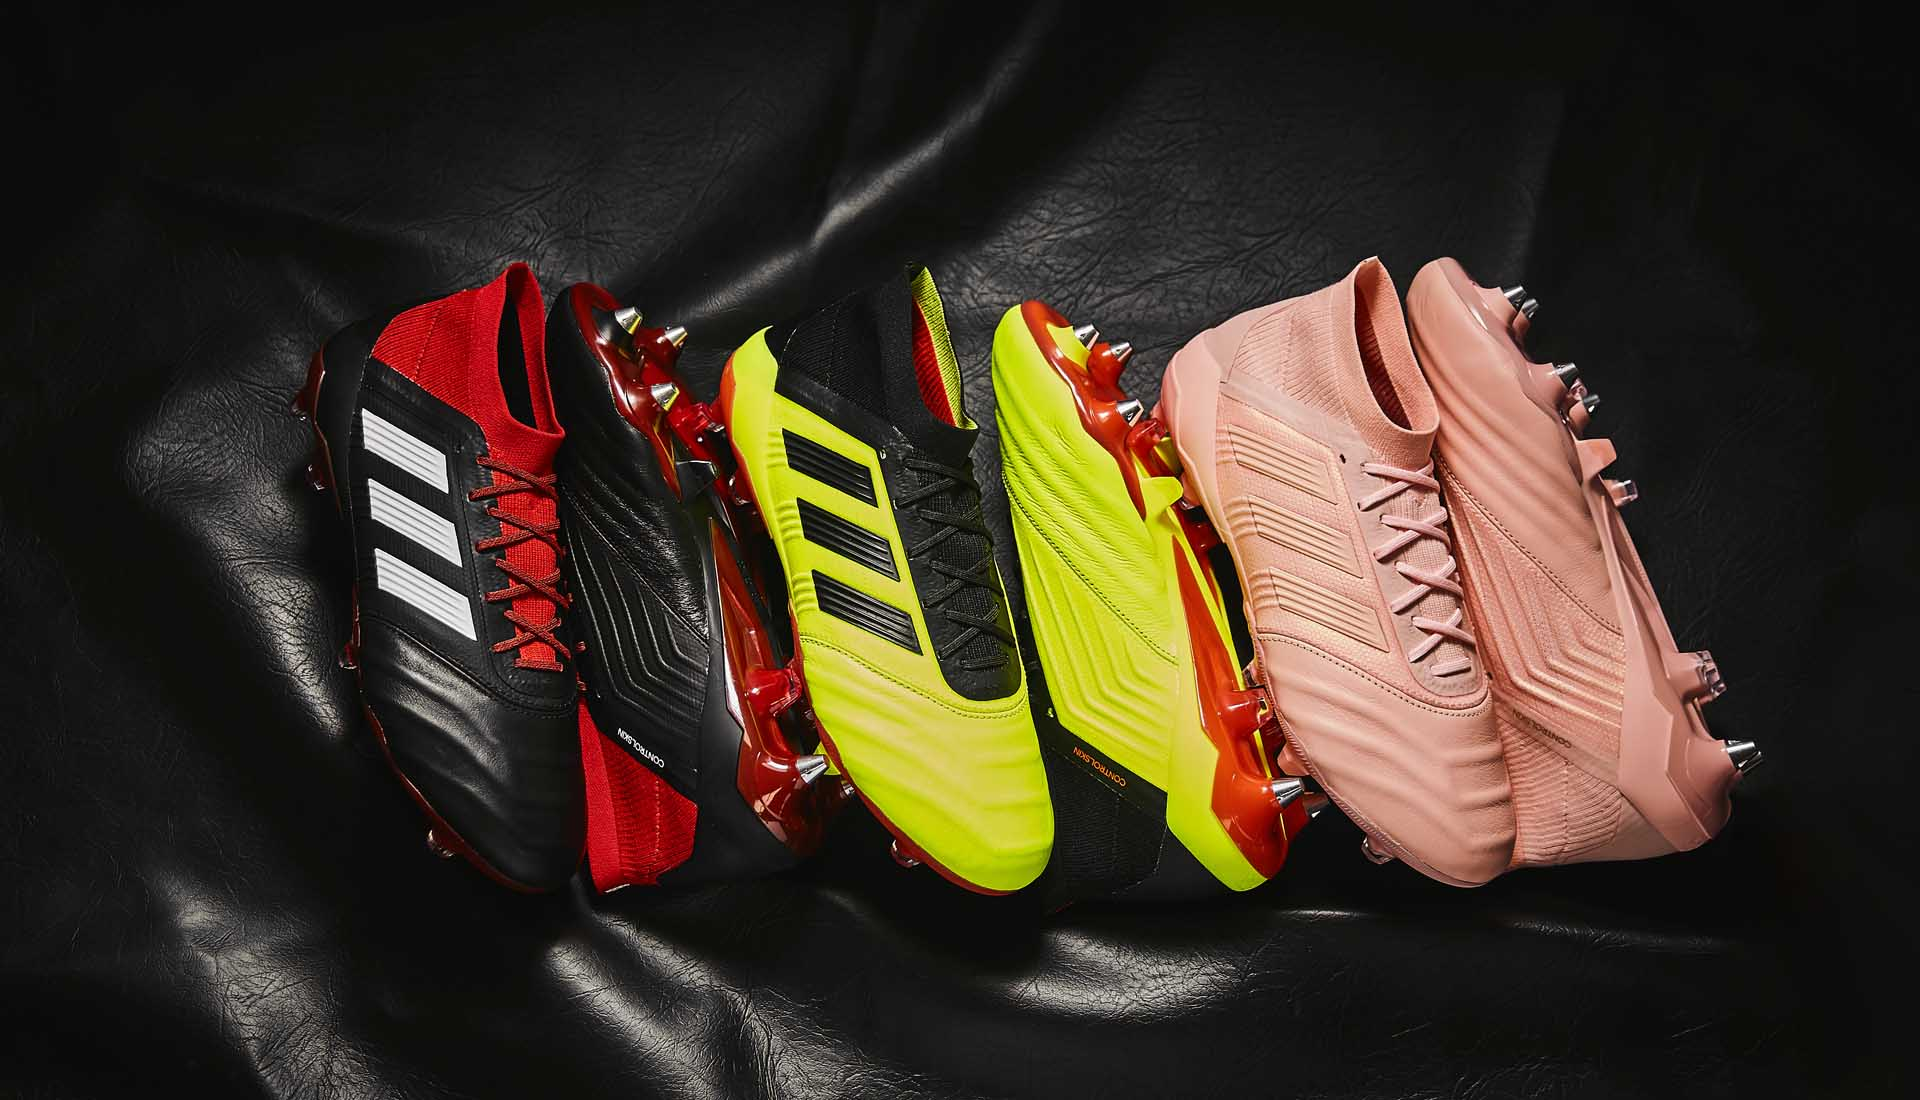 e6c932f8f50 adidas Launch the Predator 18.1 Leather Collection - SoccerBible